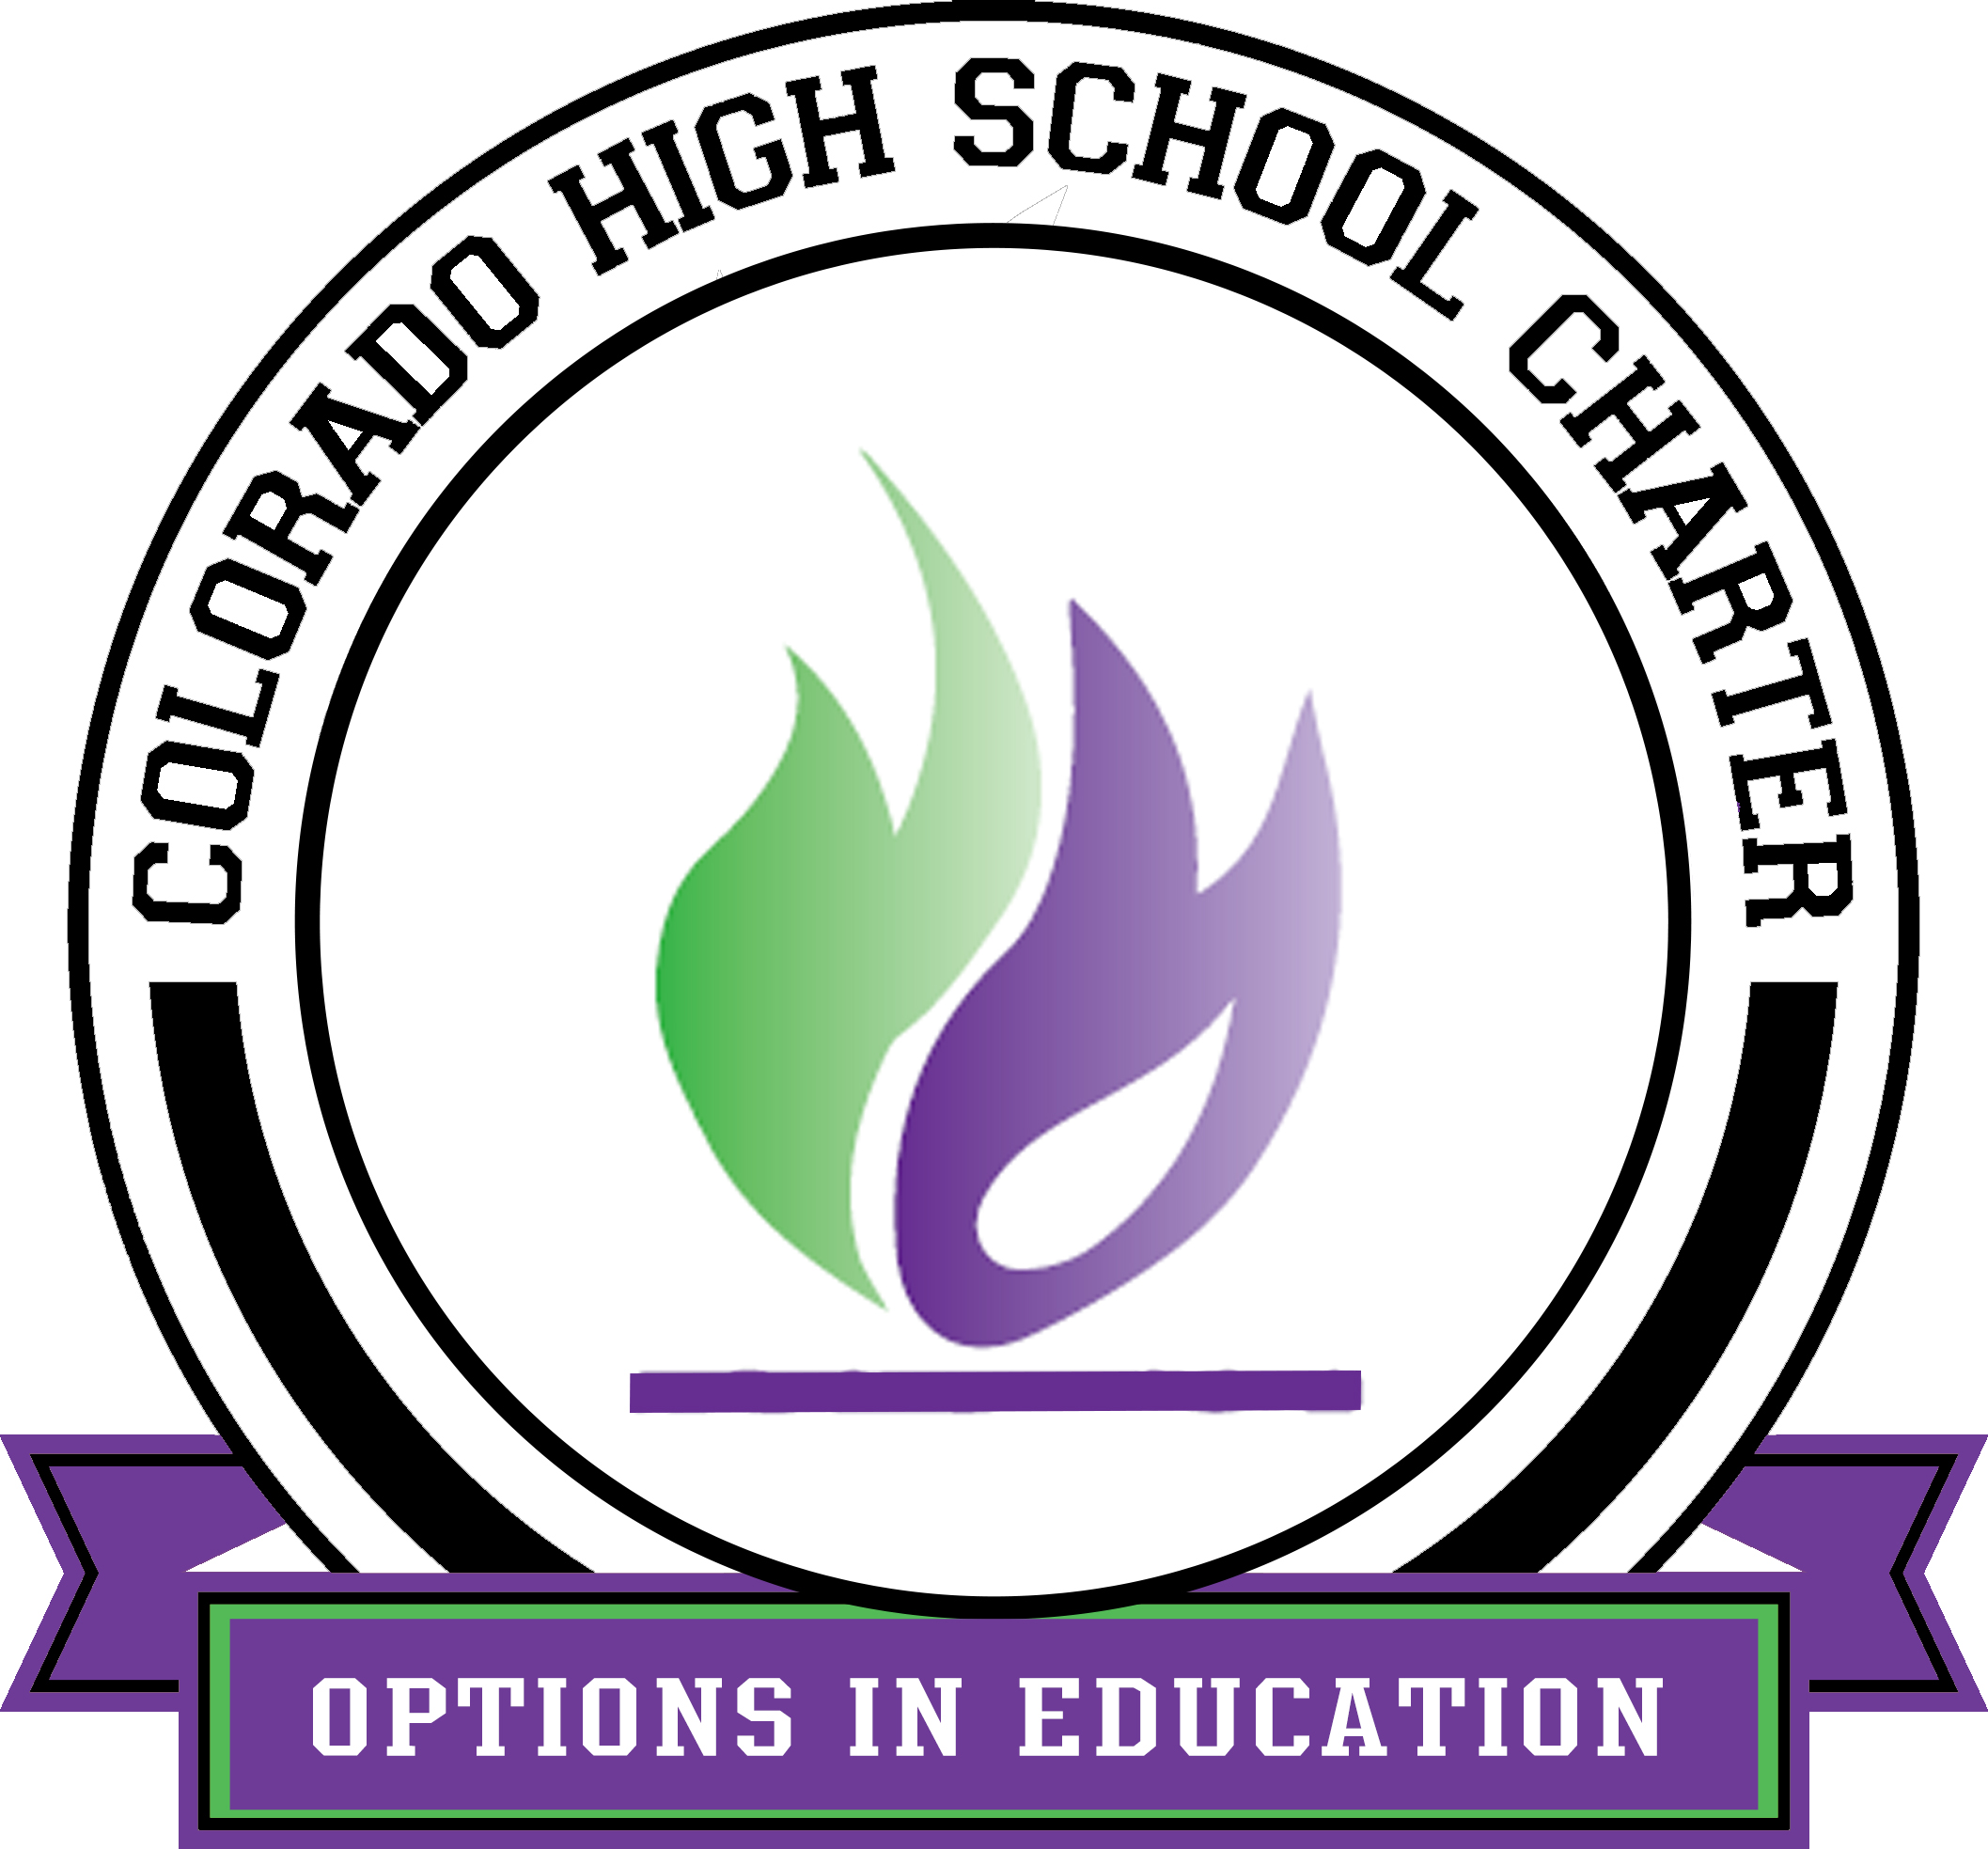 Colorado High School Charter logo